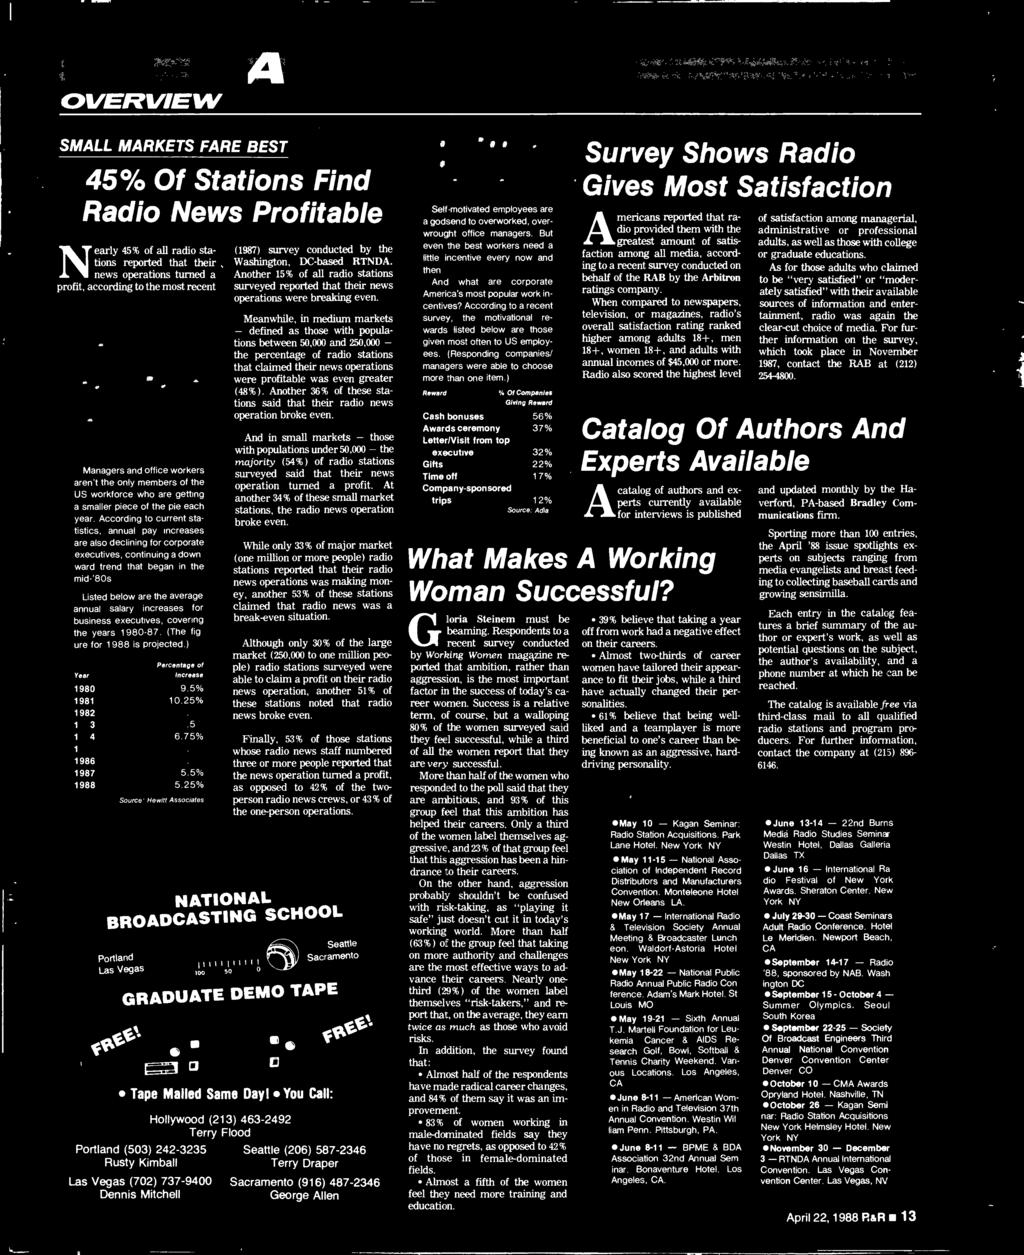 Ron Chapman With Windfall A Voice Listeners Trust Pdf Trinity Tie Knot Diagram How To Murrell Necktie Menwhile In Medium Mrkets Defined S Those Popultions Between 50000 Nd 250000